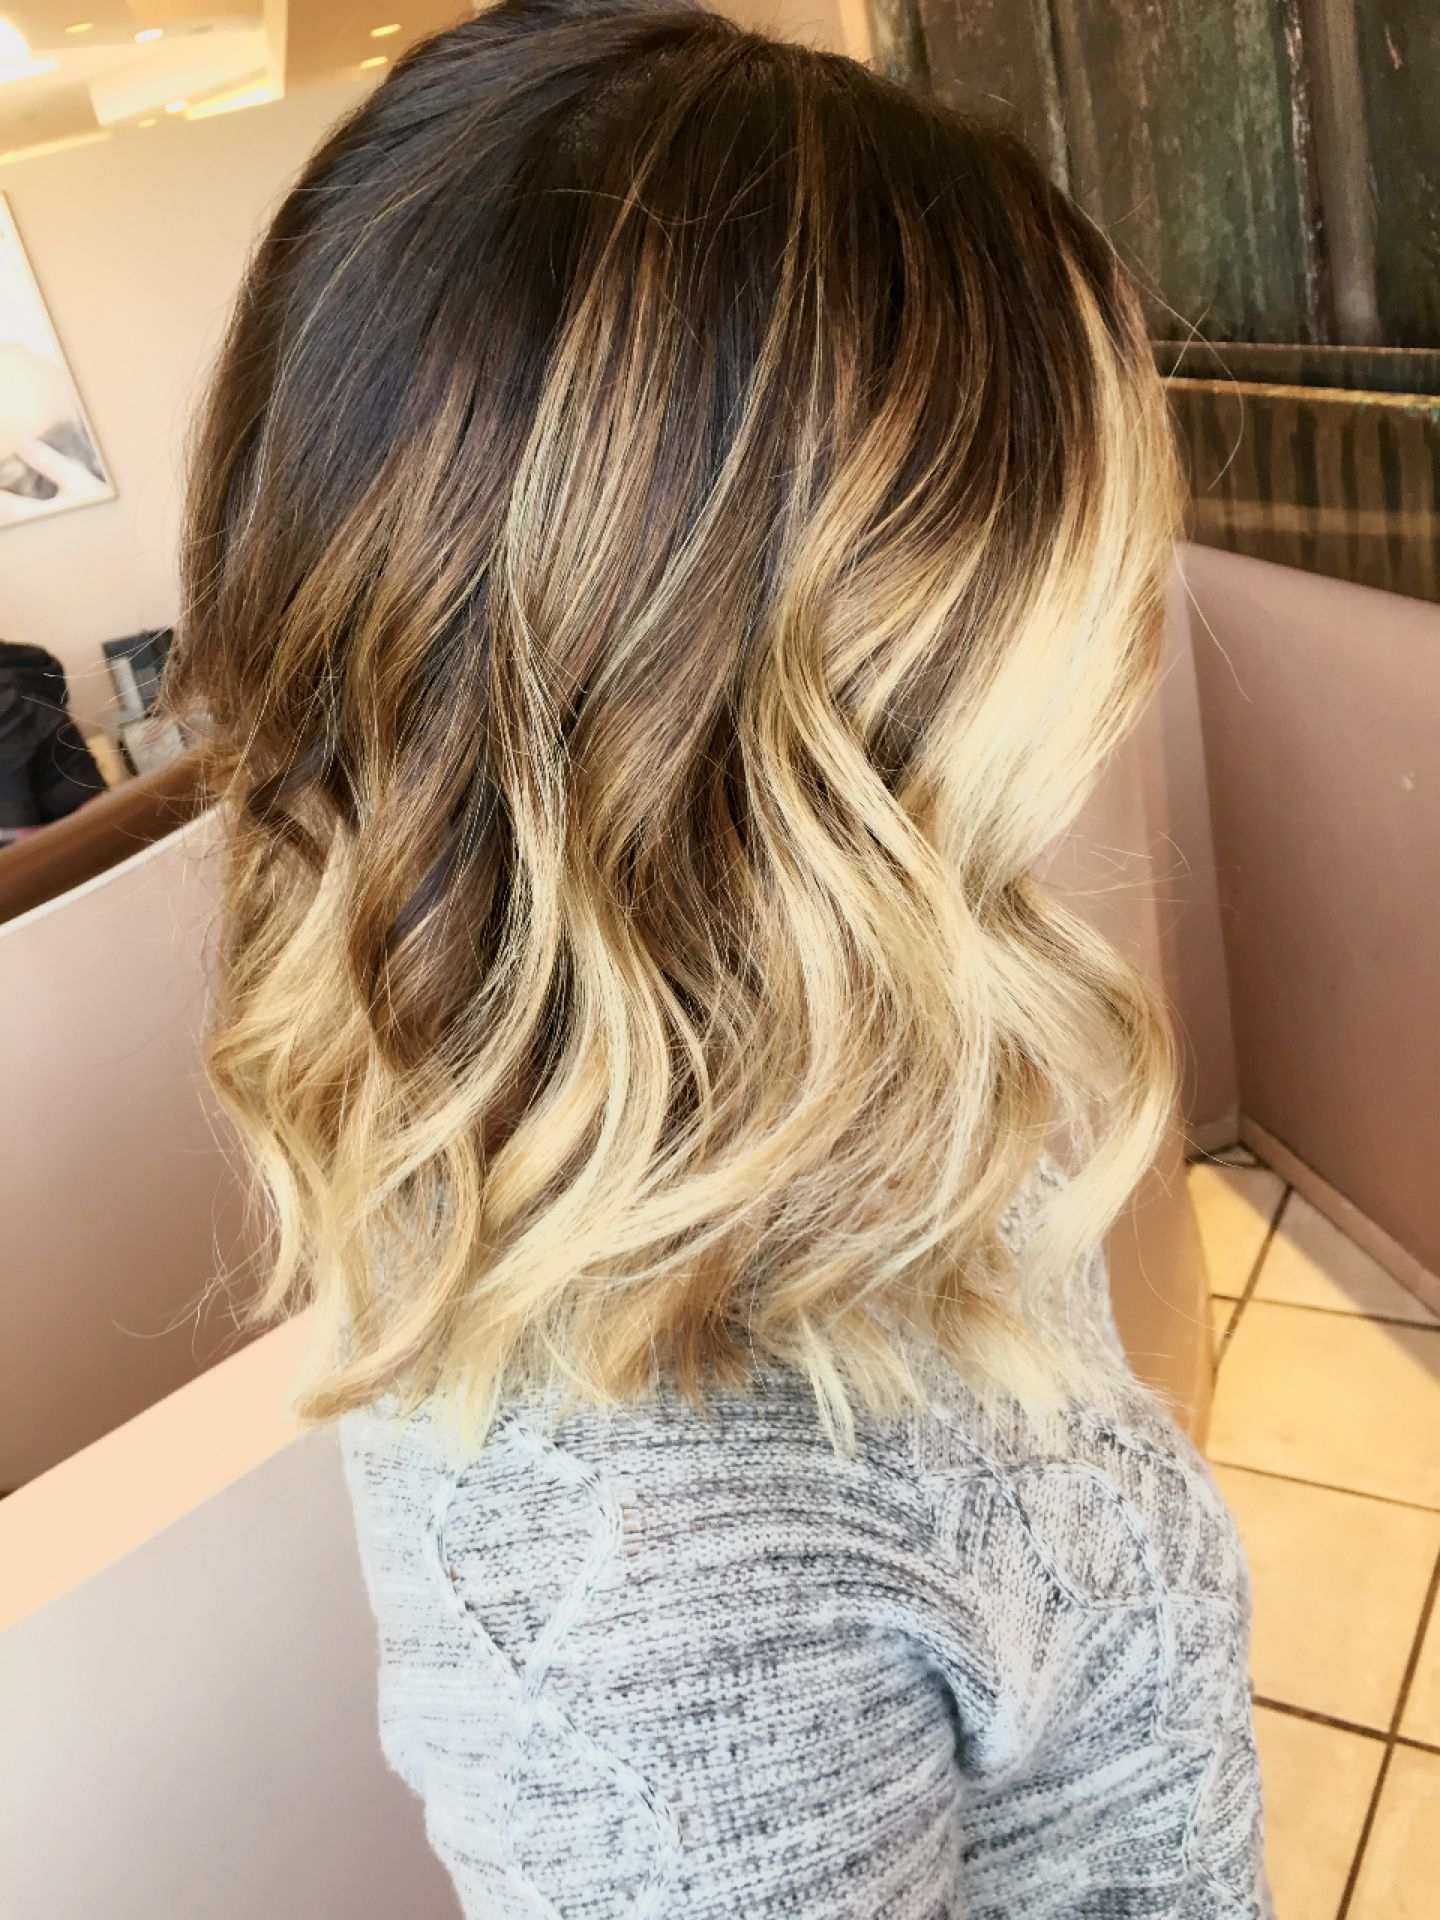 Short Ombré Blonde Hair | Blonde Ombre Short Hair, Short Within Blonde Balayage On Short Dark Hairstyles (View 7 of 20)